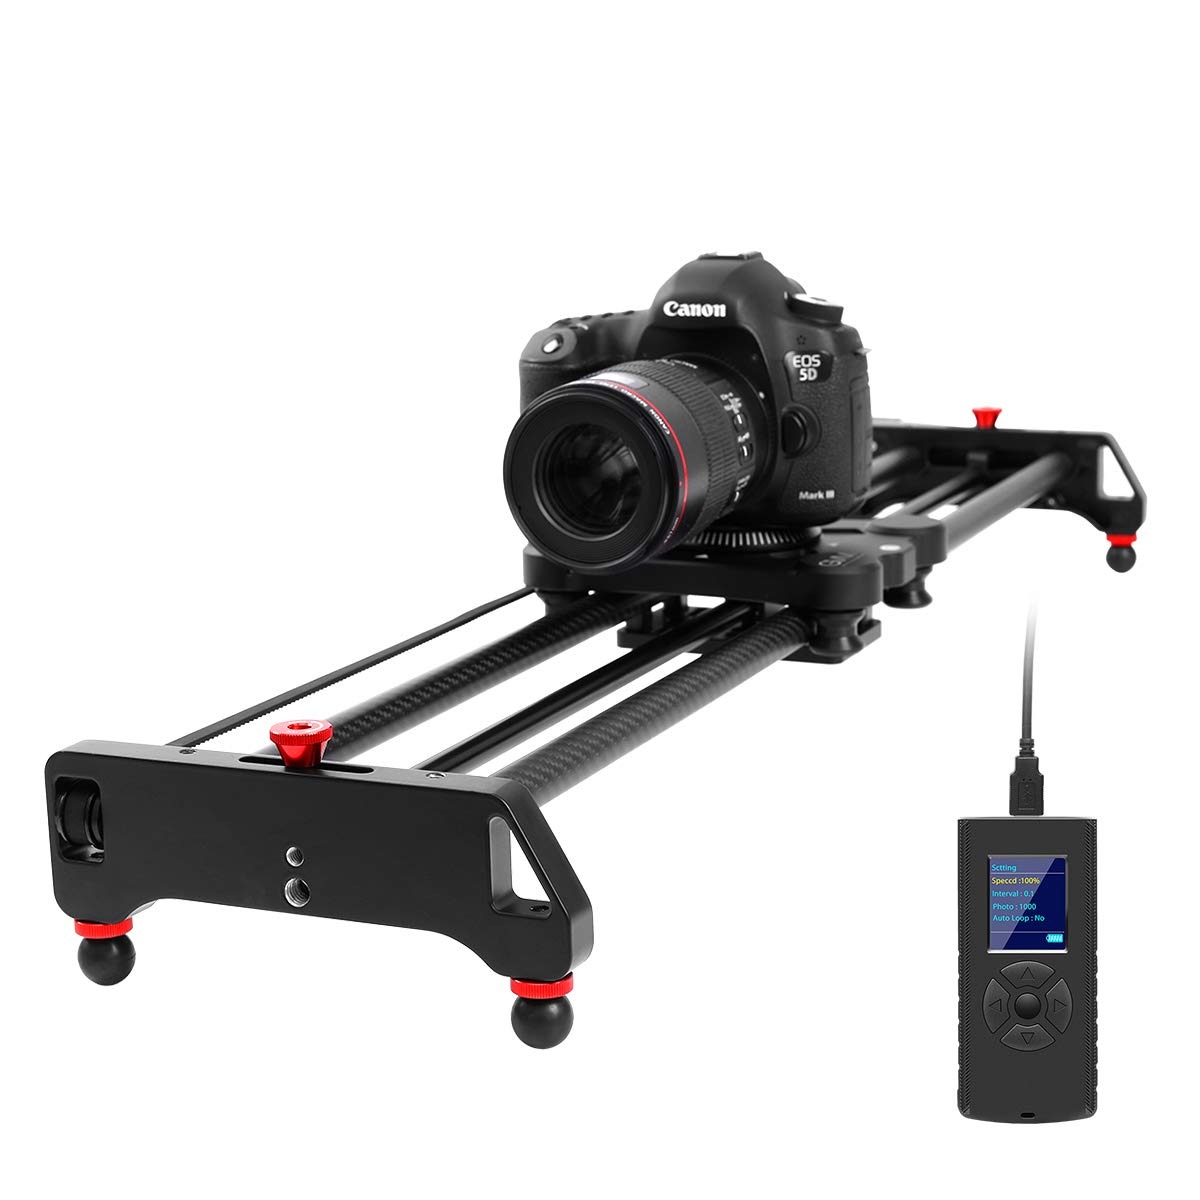 GVM Motorized Camera Slider Time Lapse and Video Shot, with Remote Controller, 120 Degree Panoramic Shooting 31'' 80cm, Track Dolly Sliders Rail System with Motorized by GVM Great Video Maker